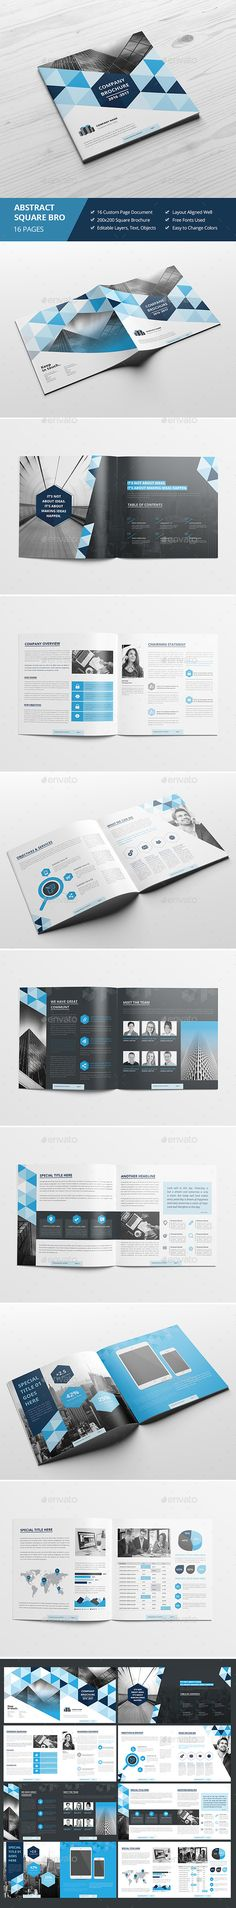 Haweya Abstract Square Brochure Template InDesign INDD. Download here…